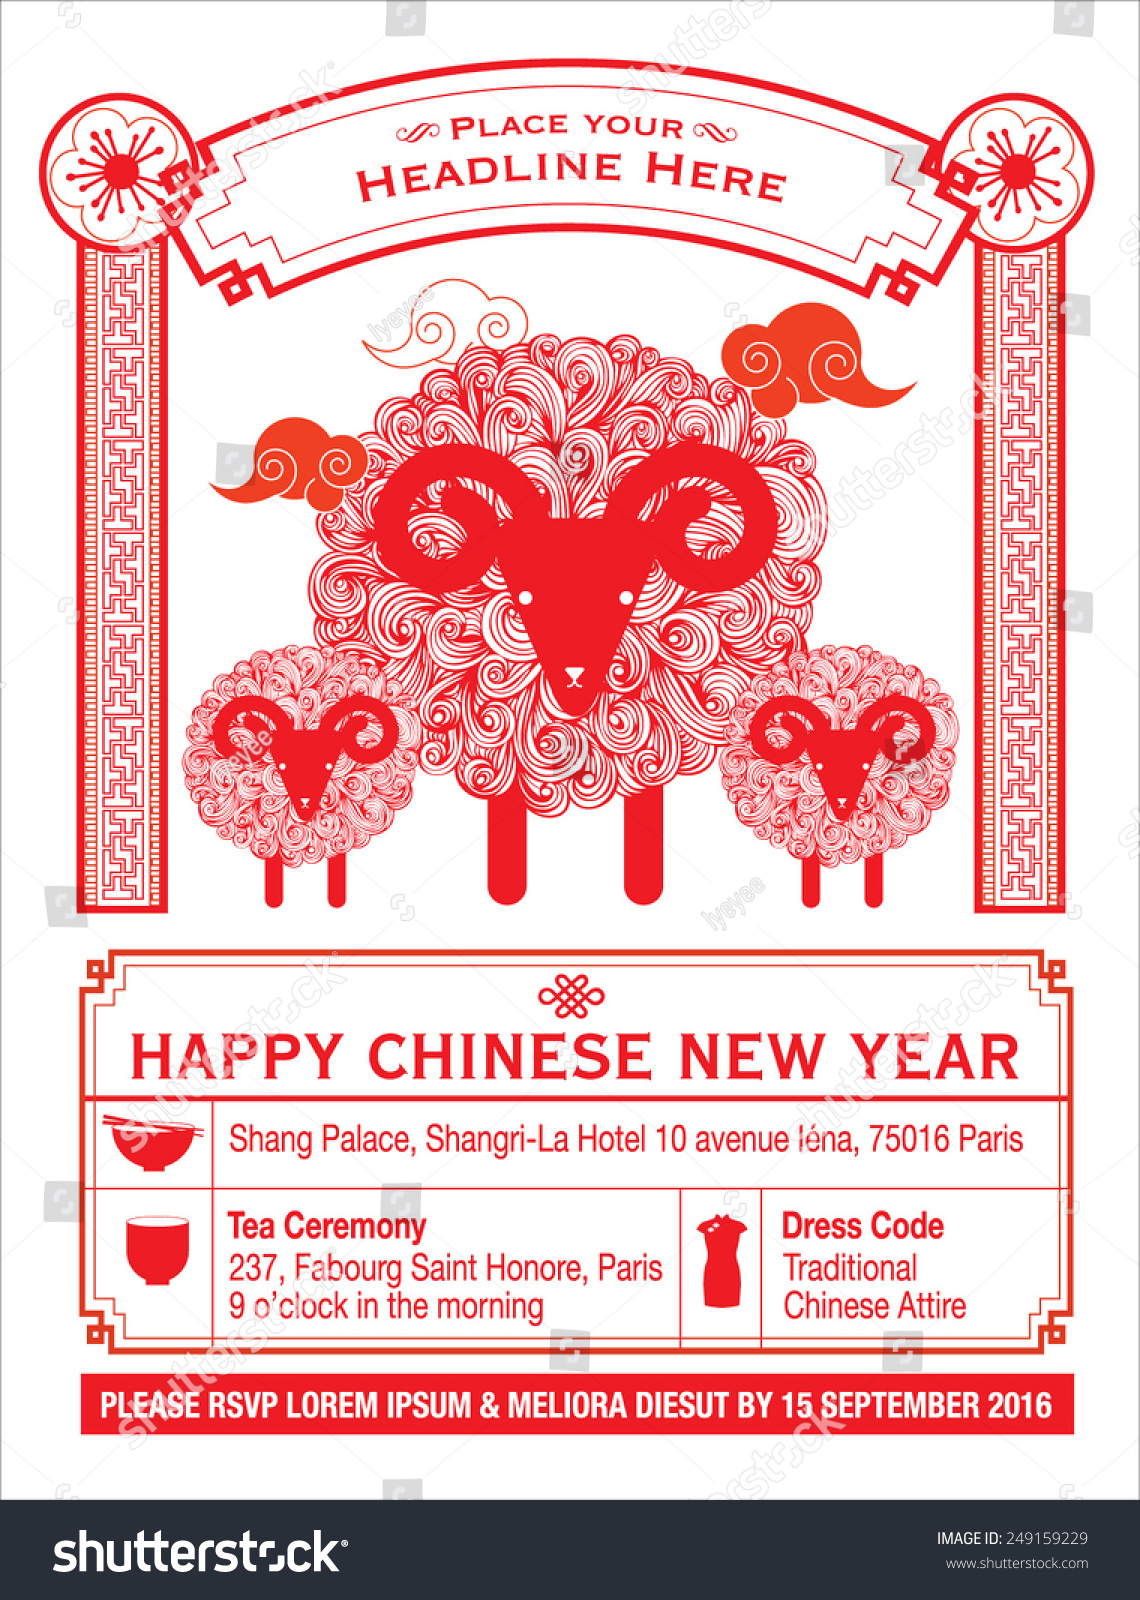 Chinese Calendar Chinese New Year Card Stock Vector ...